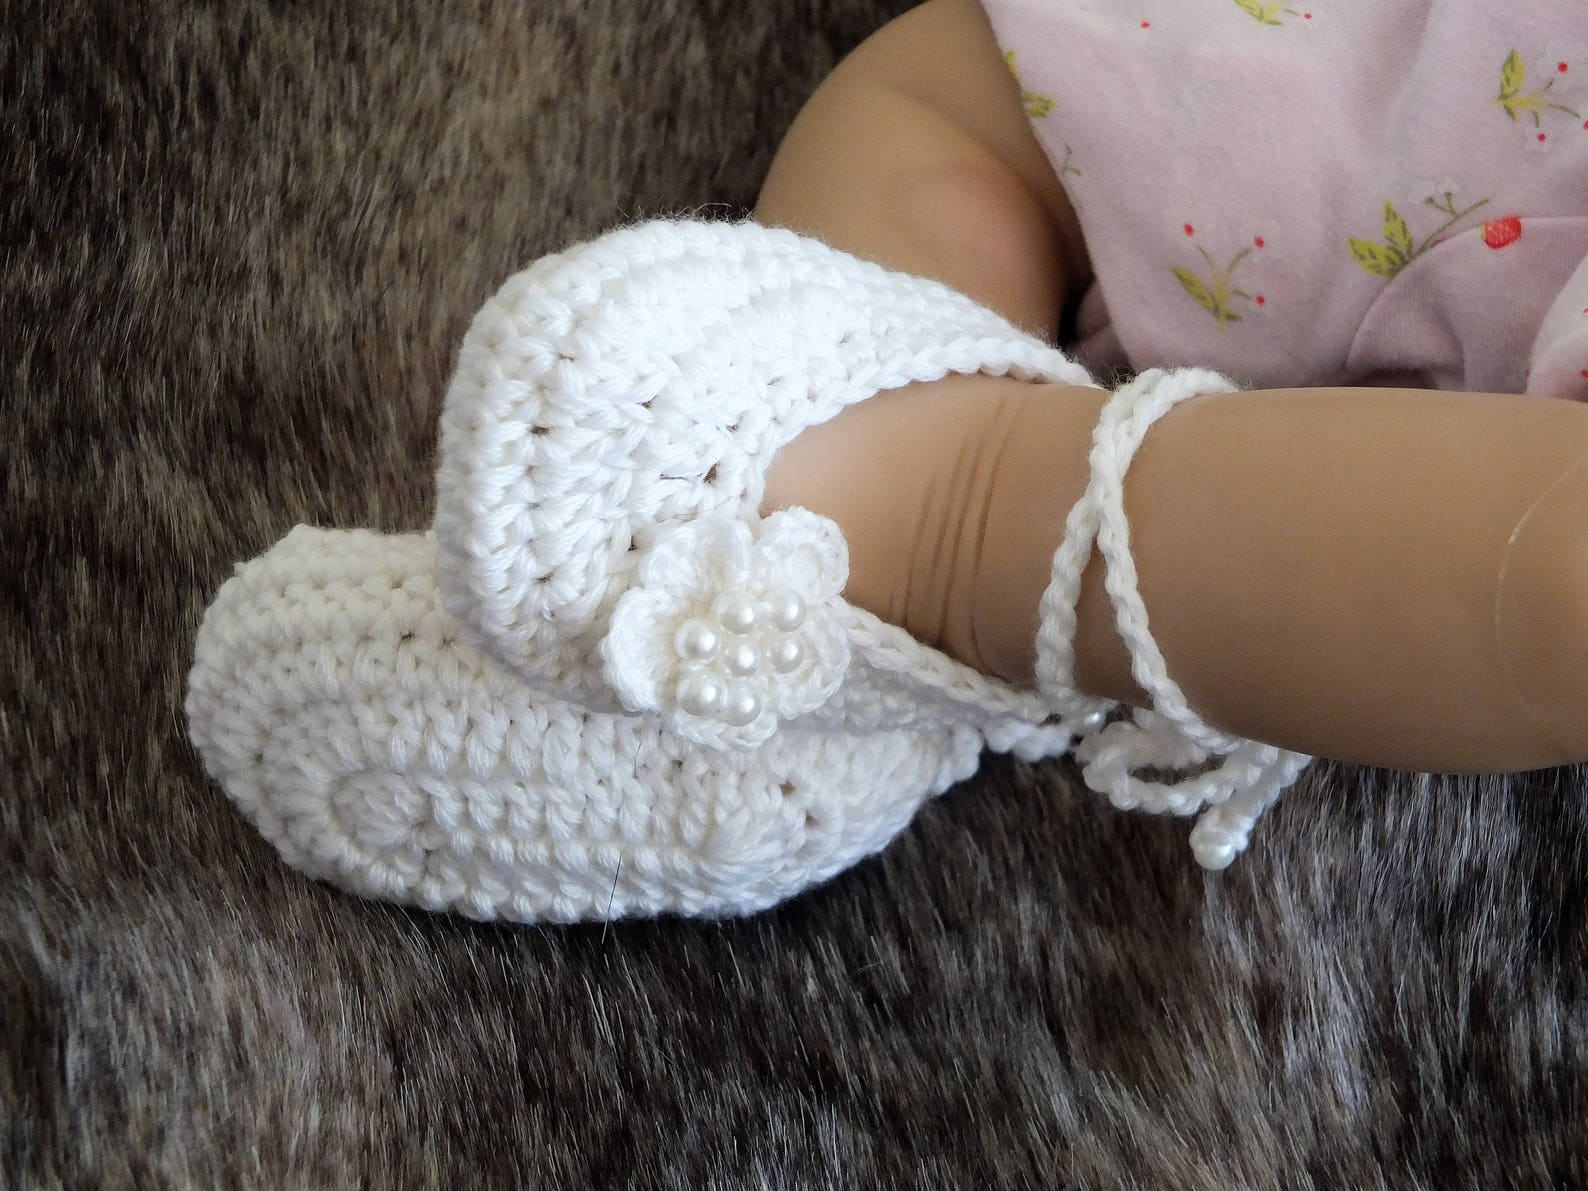 white baby girl flower shoes - preemie girl shoes - crochet baby shoes - baby girl gift - baby ballet shoes - mary janes - newbo